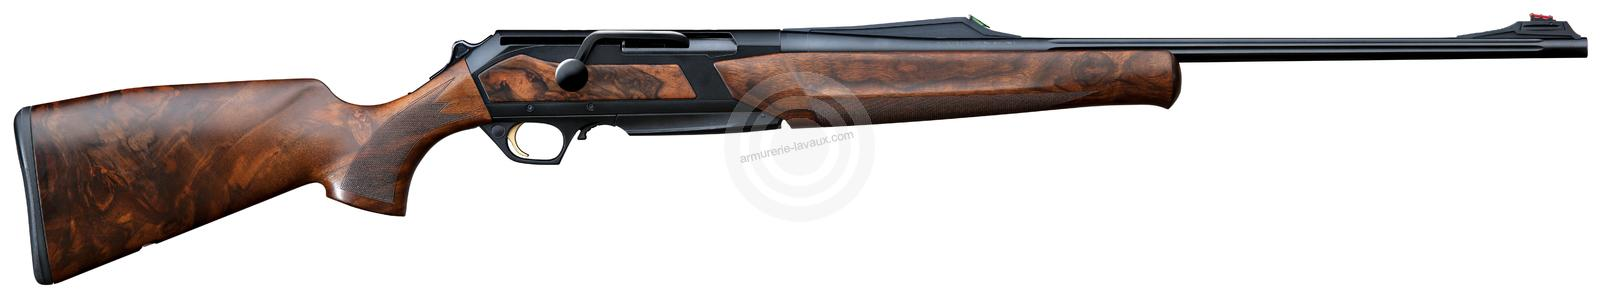 Carabine BROWNING MARAL Fluted HC cal.9,3x62